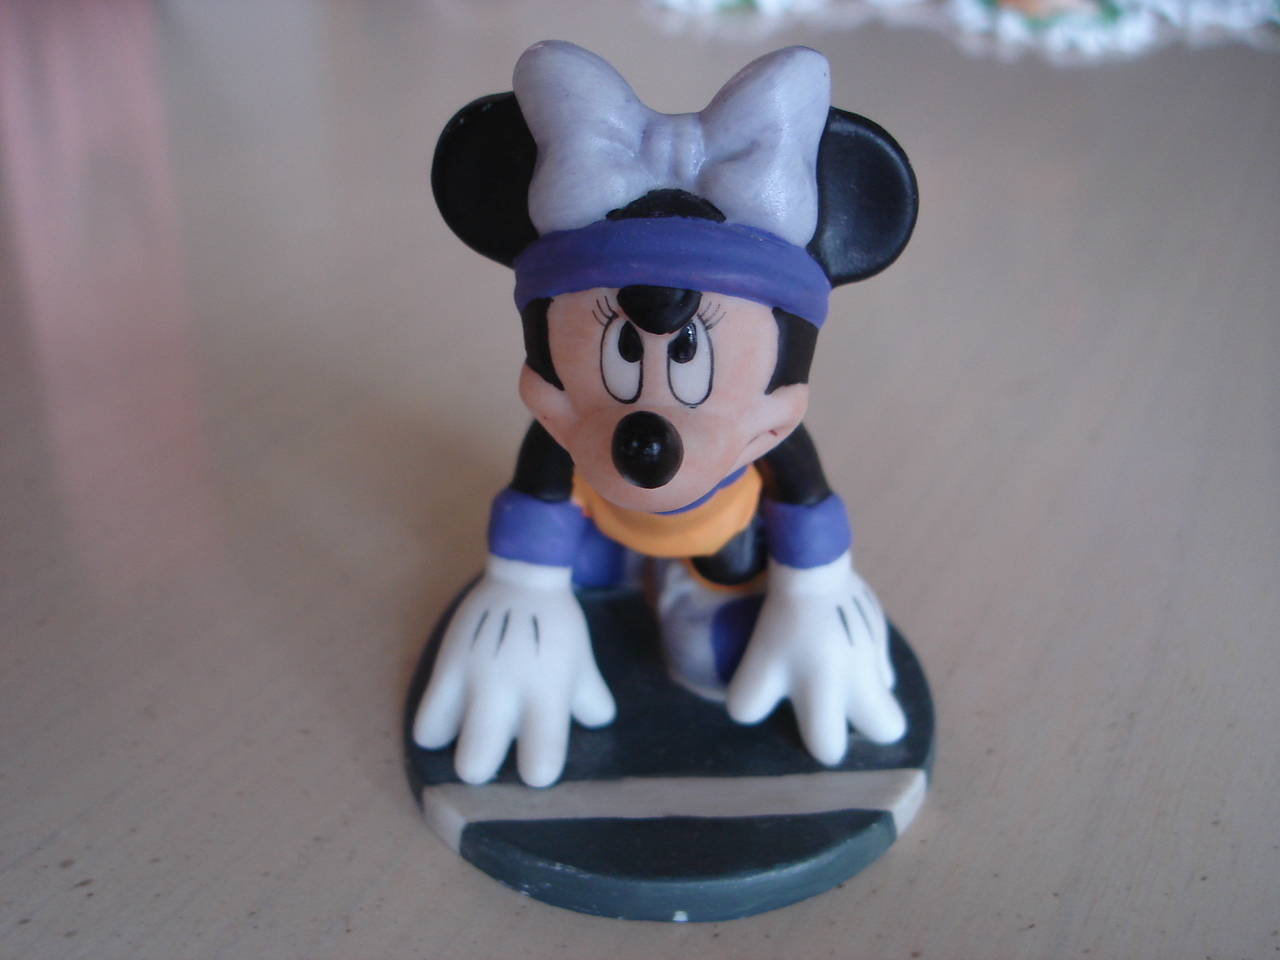 Disney's Minnie Mouse Track Star Porcelain Figurine